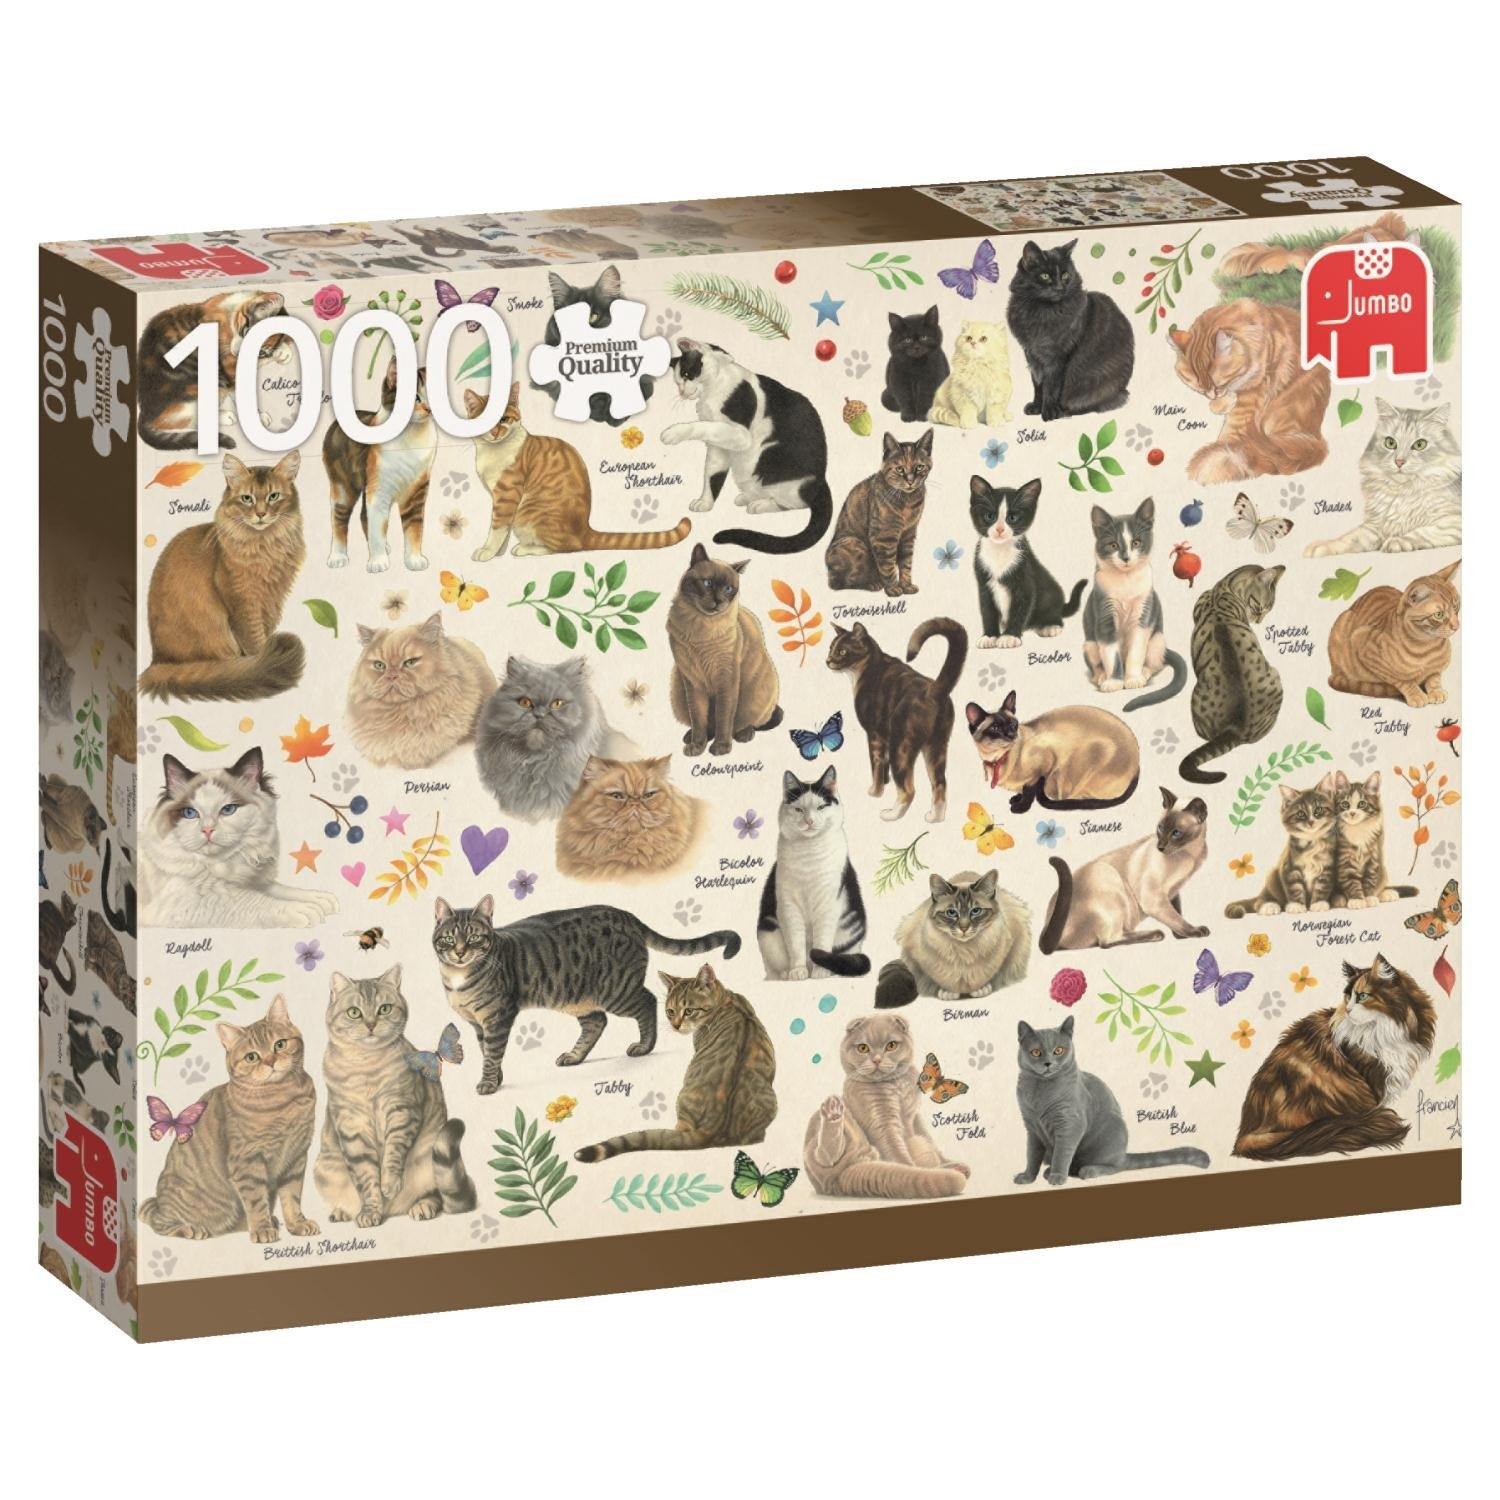 Premium Collection Jumbo, Cats Poster, 1000pc Falcon Jigsaw Puzzle